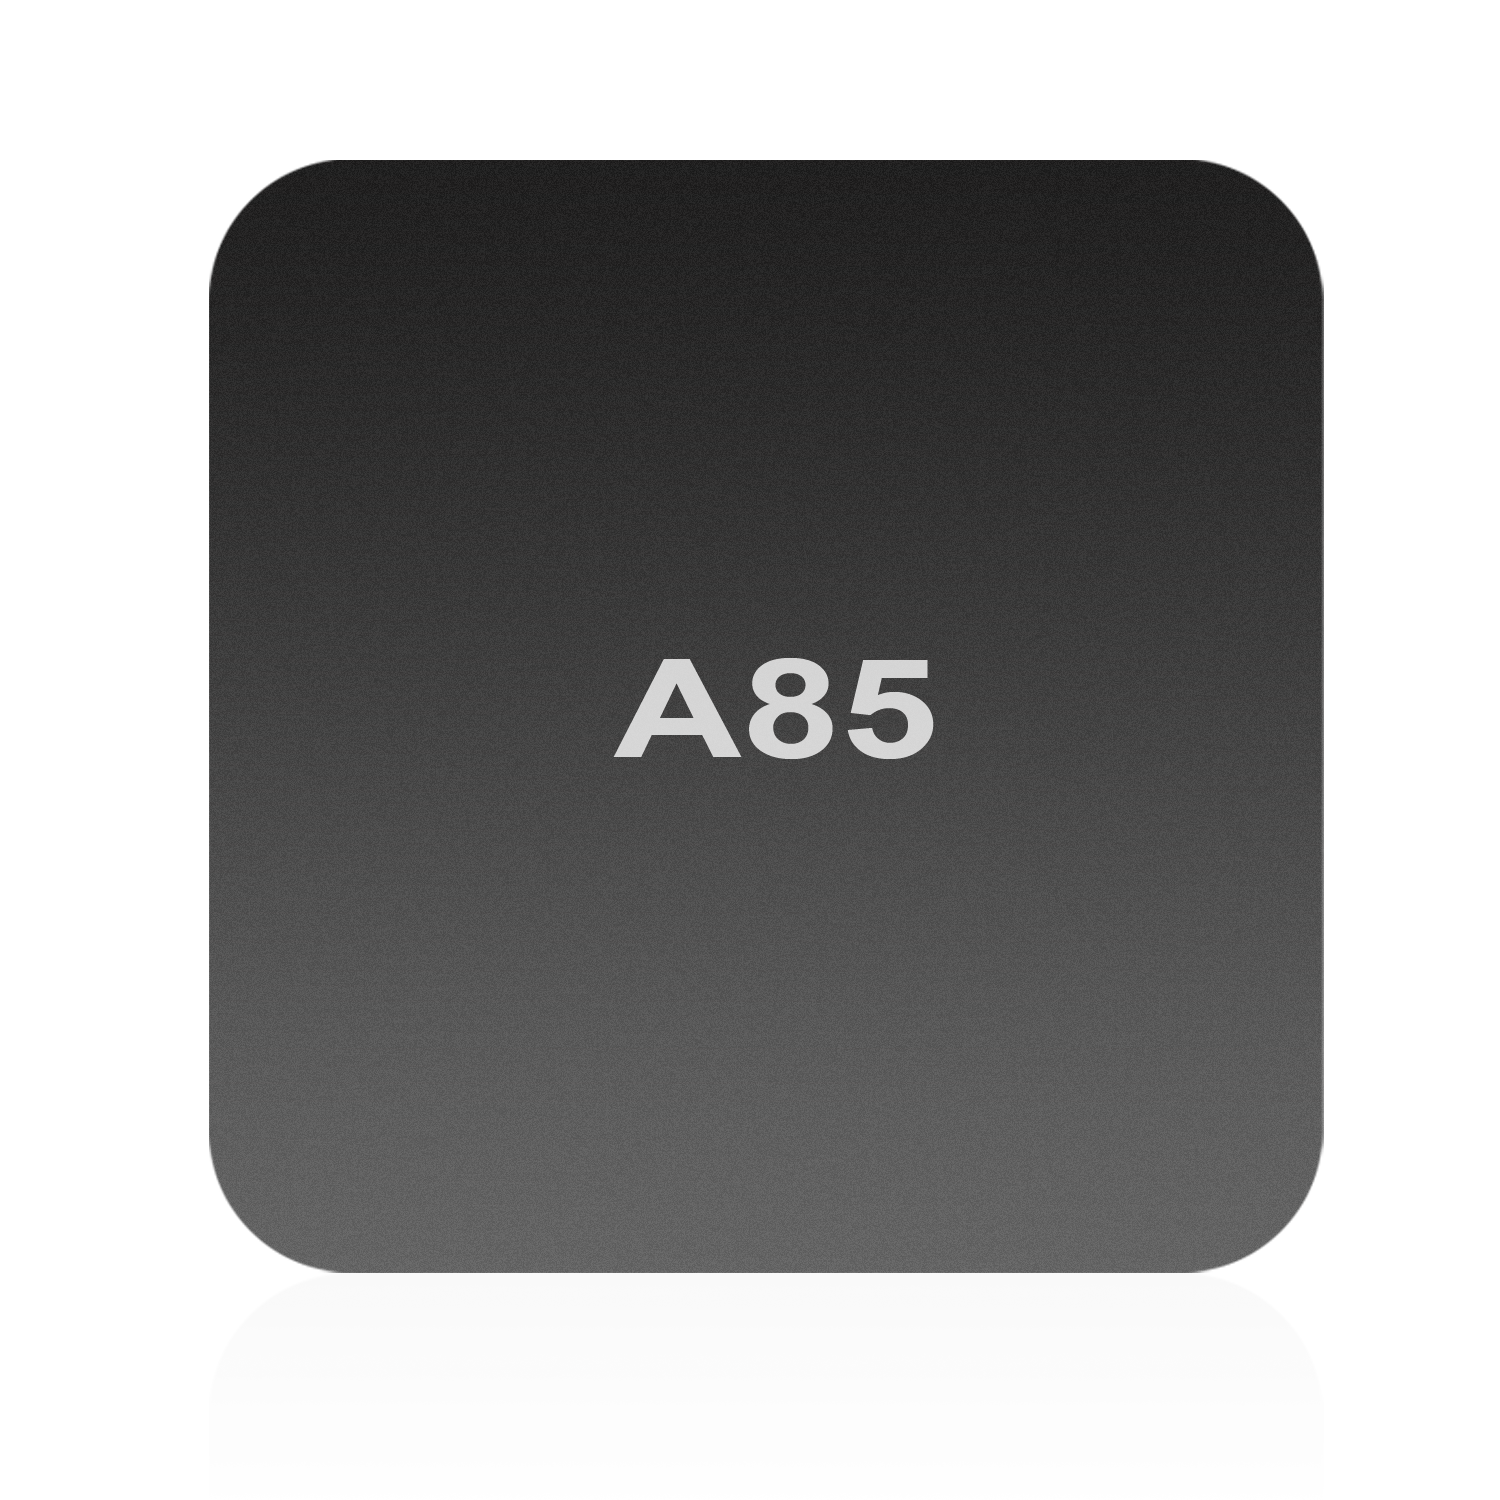 A85 tv Box z androidem Amlogic S805 obsługa Miracast DLNA Google Play 1GB 8GB inteligentny odtwarzacz multimedialny Youtube dekoder 1GB 8GB